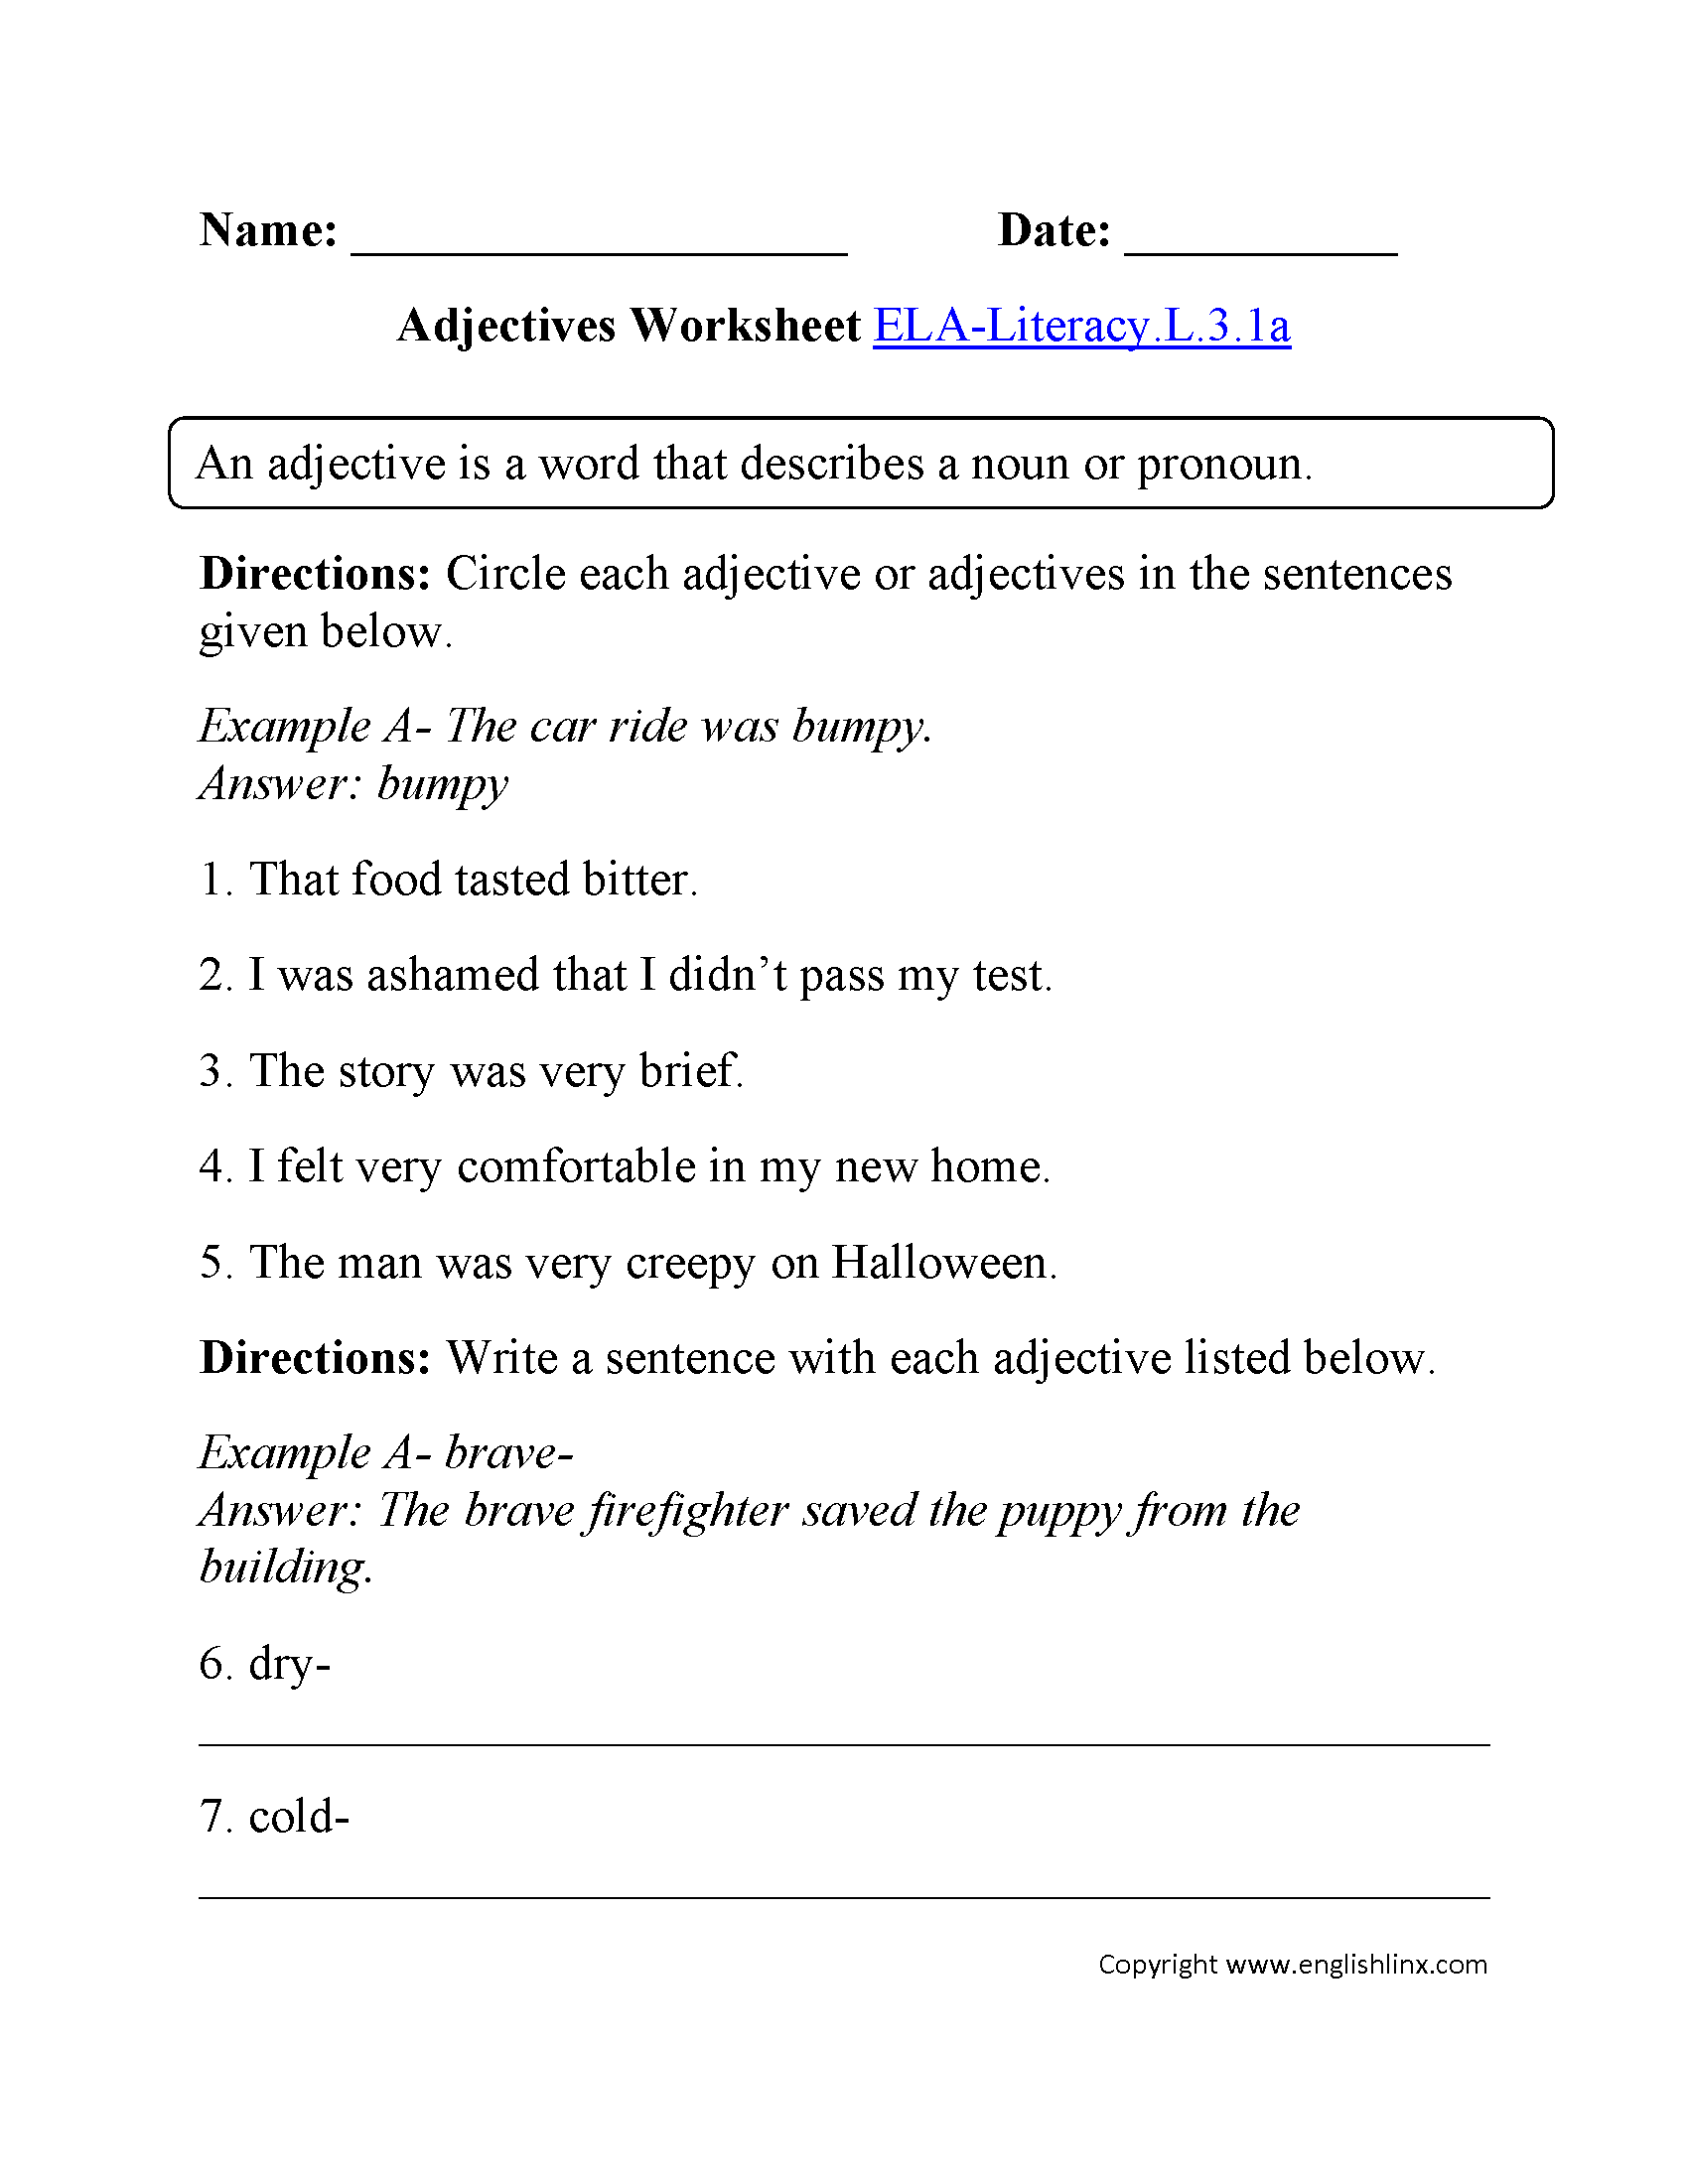 worksheet Common Core Writing Worksheets 3rd grade common core language worksheets adjectives worksheet 2 ela literacy l 3 1a worksheet